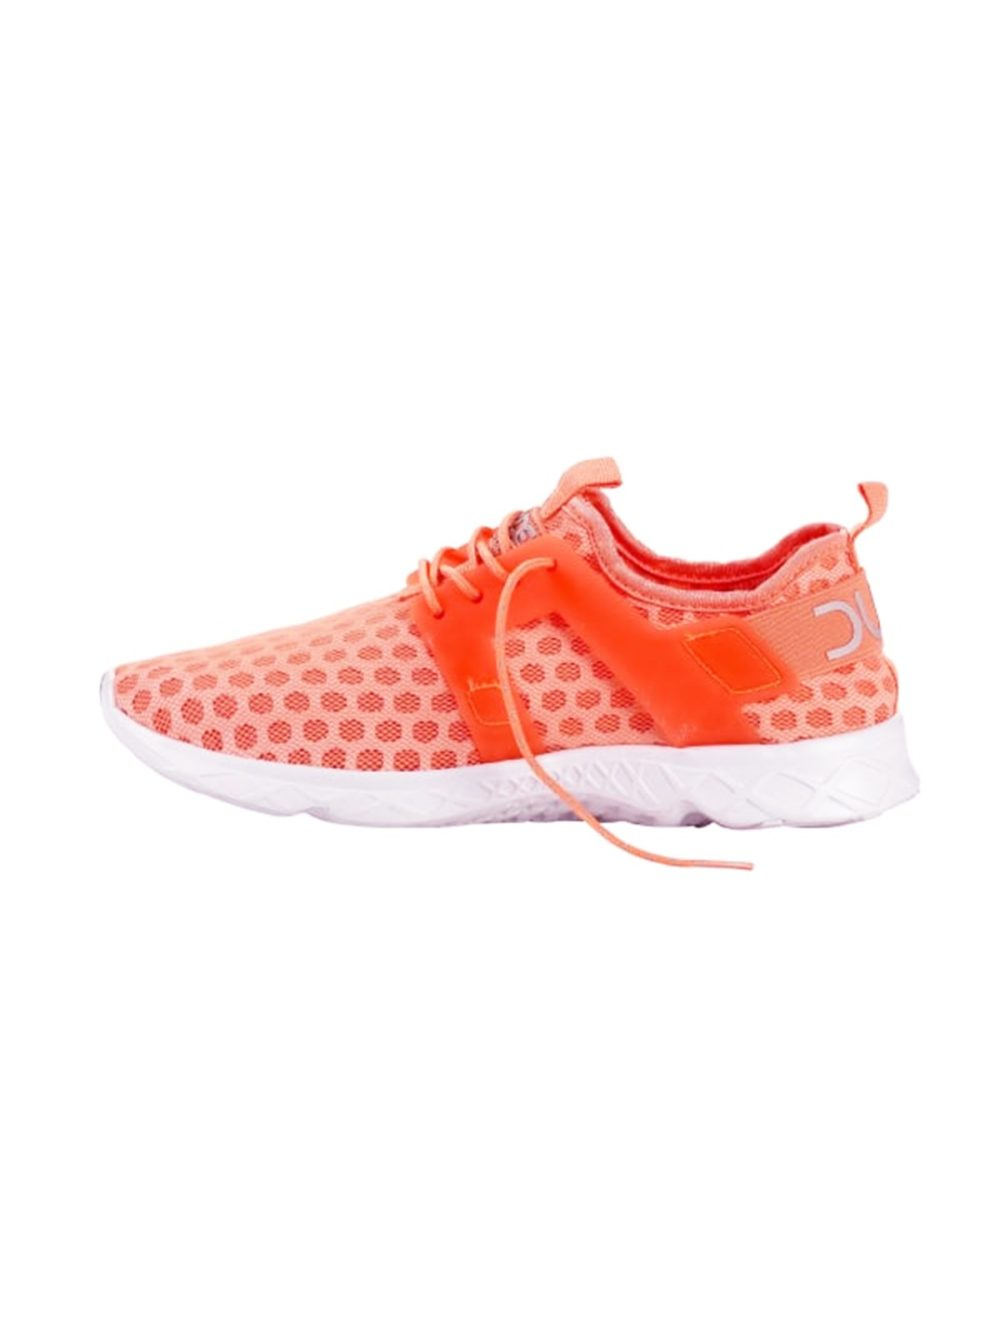 Mistral Rose Melange Airflow Hey Dude Shoes Katie Kerr Women's Clothing